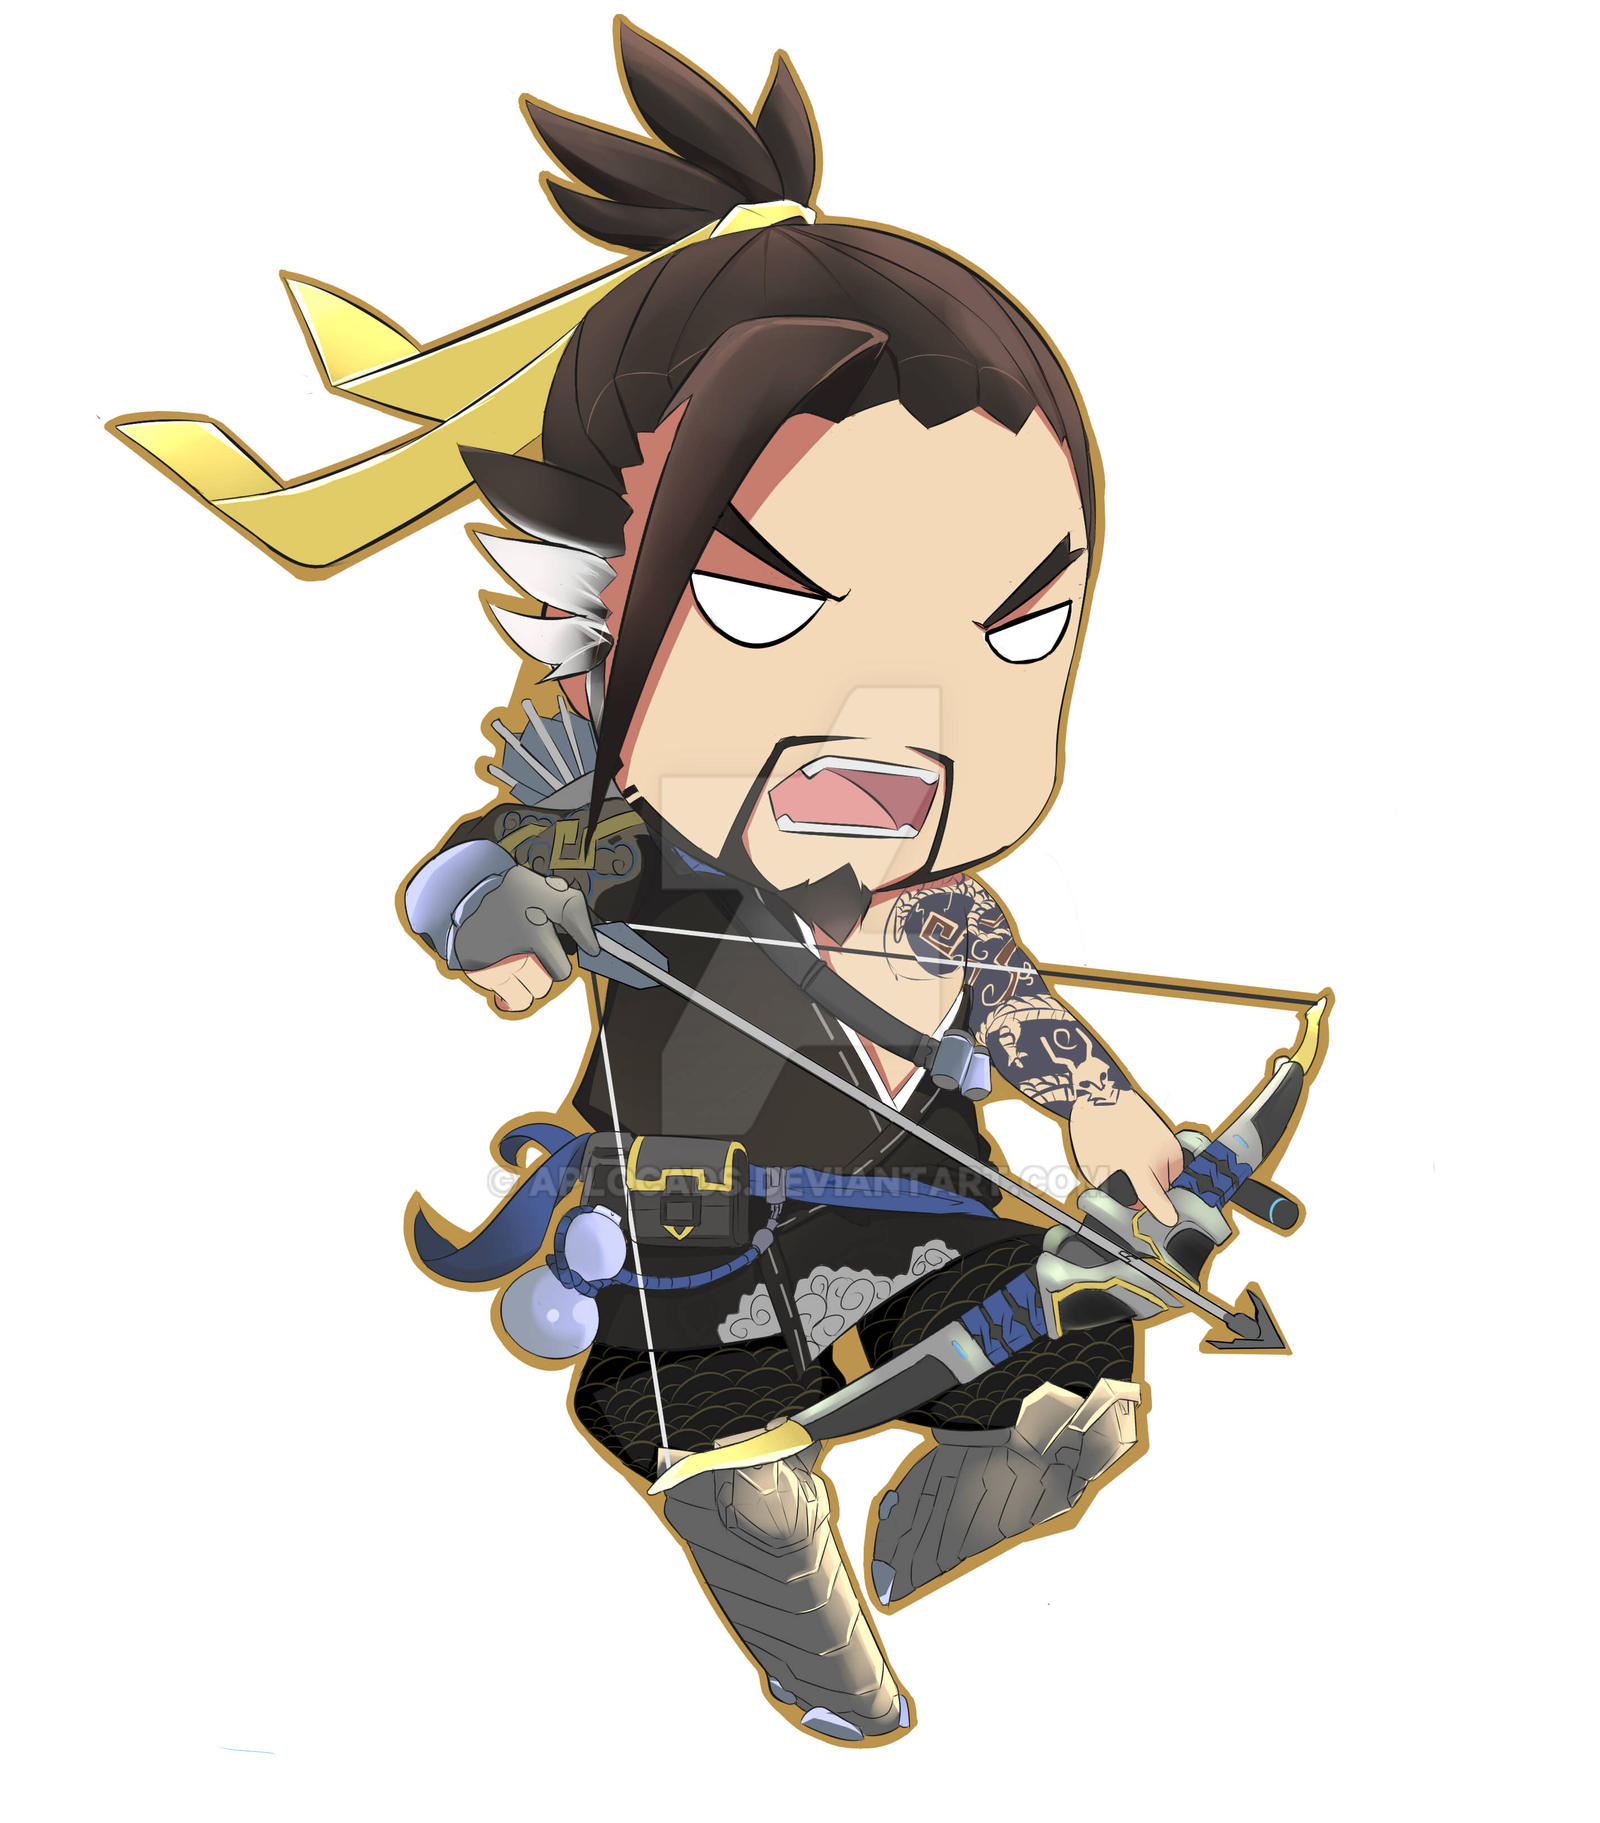 Hanzo Wallpaper: Hanzo Overwatch Chibi By Aplocads On DeviantArt